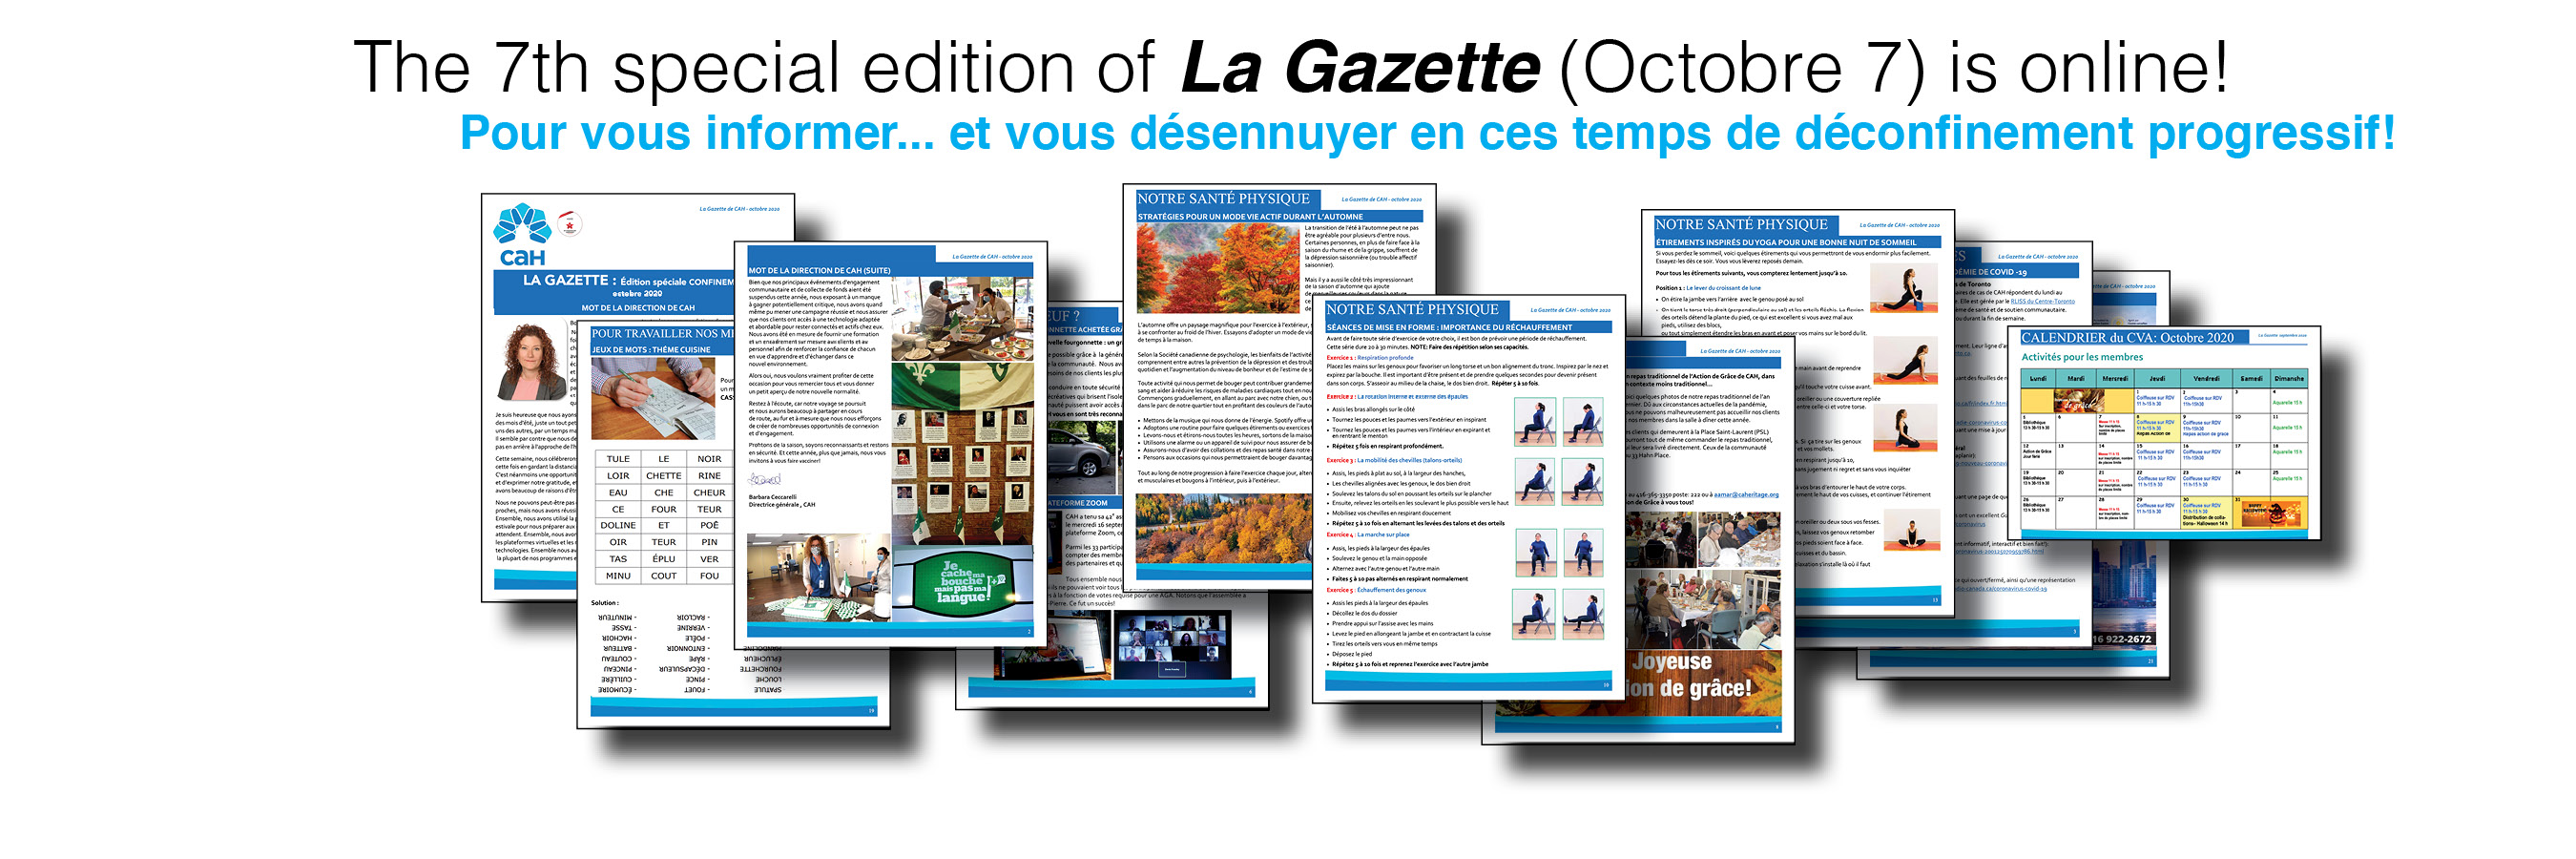 The 7th special edition of La Gazette (in French) is online!